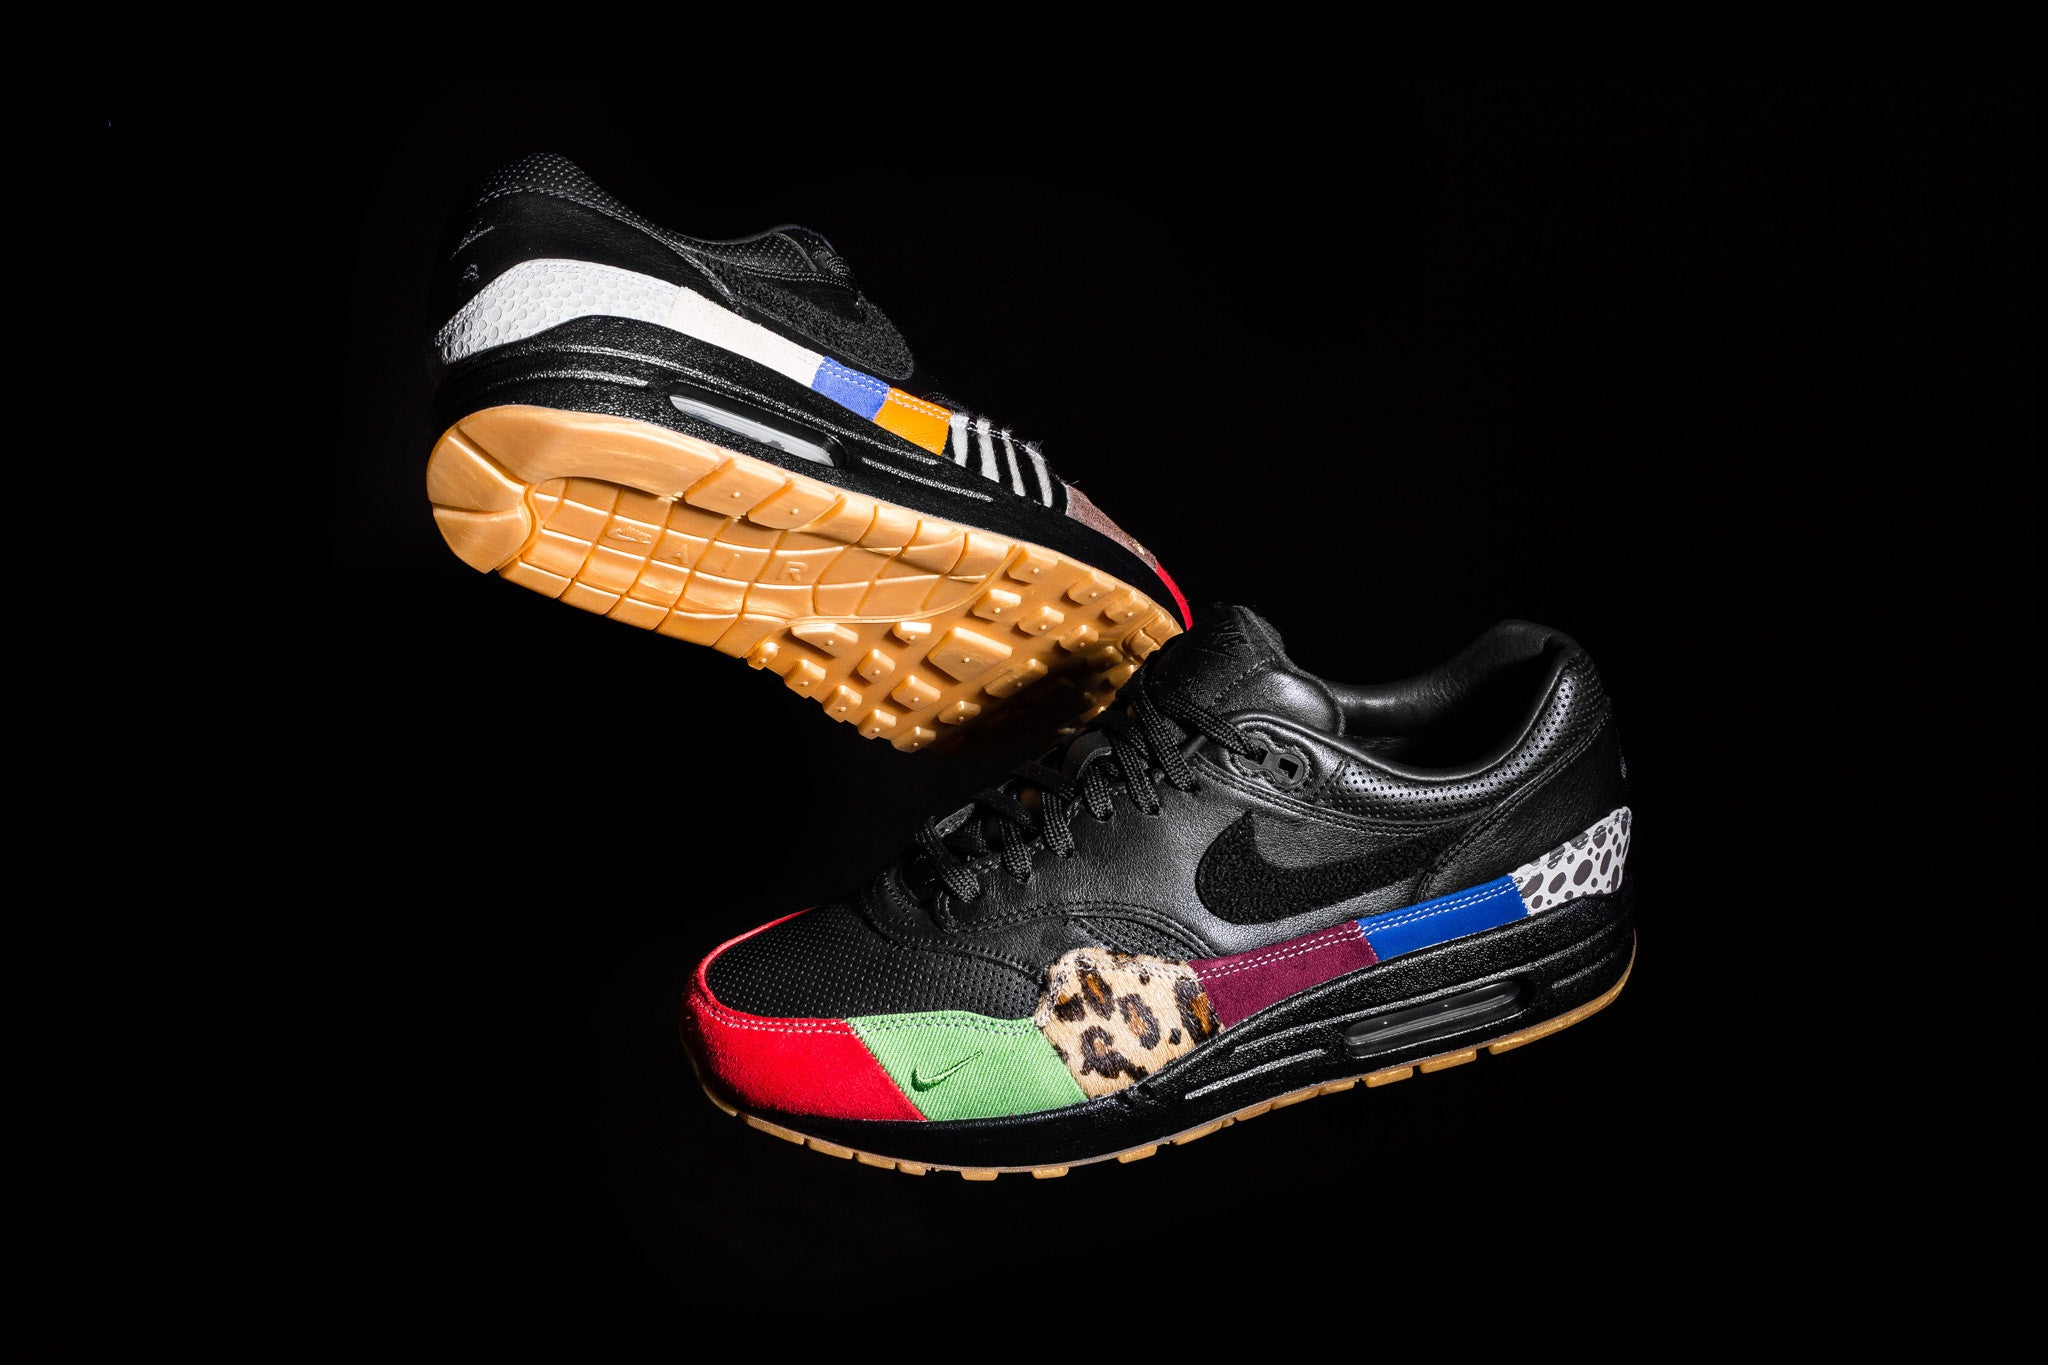 e78950f358 As the Air Max 1 celebrates its 30th anniversary, some of the most  legendary Air Max 1 designs ever released come together to create the Air  Max 1 Master.